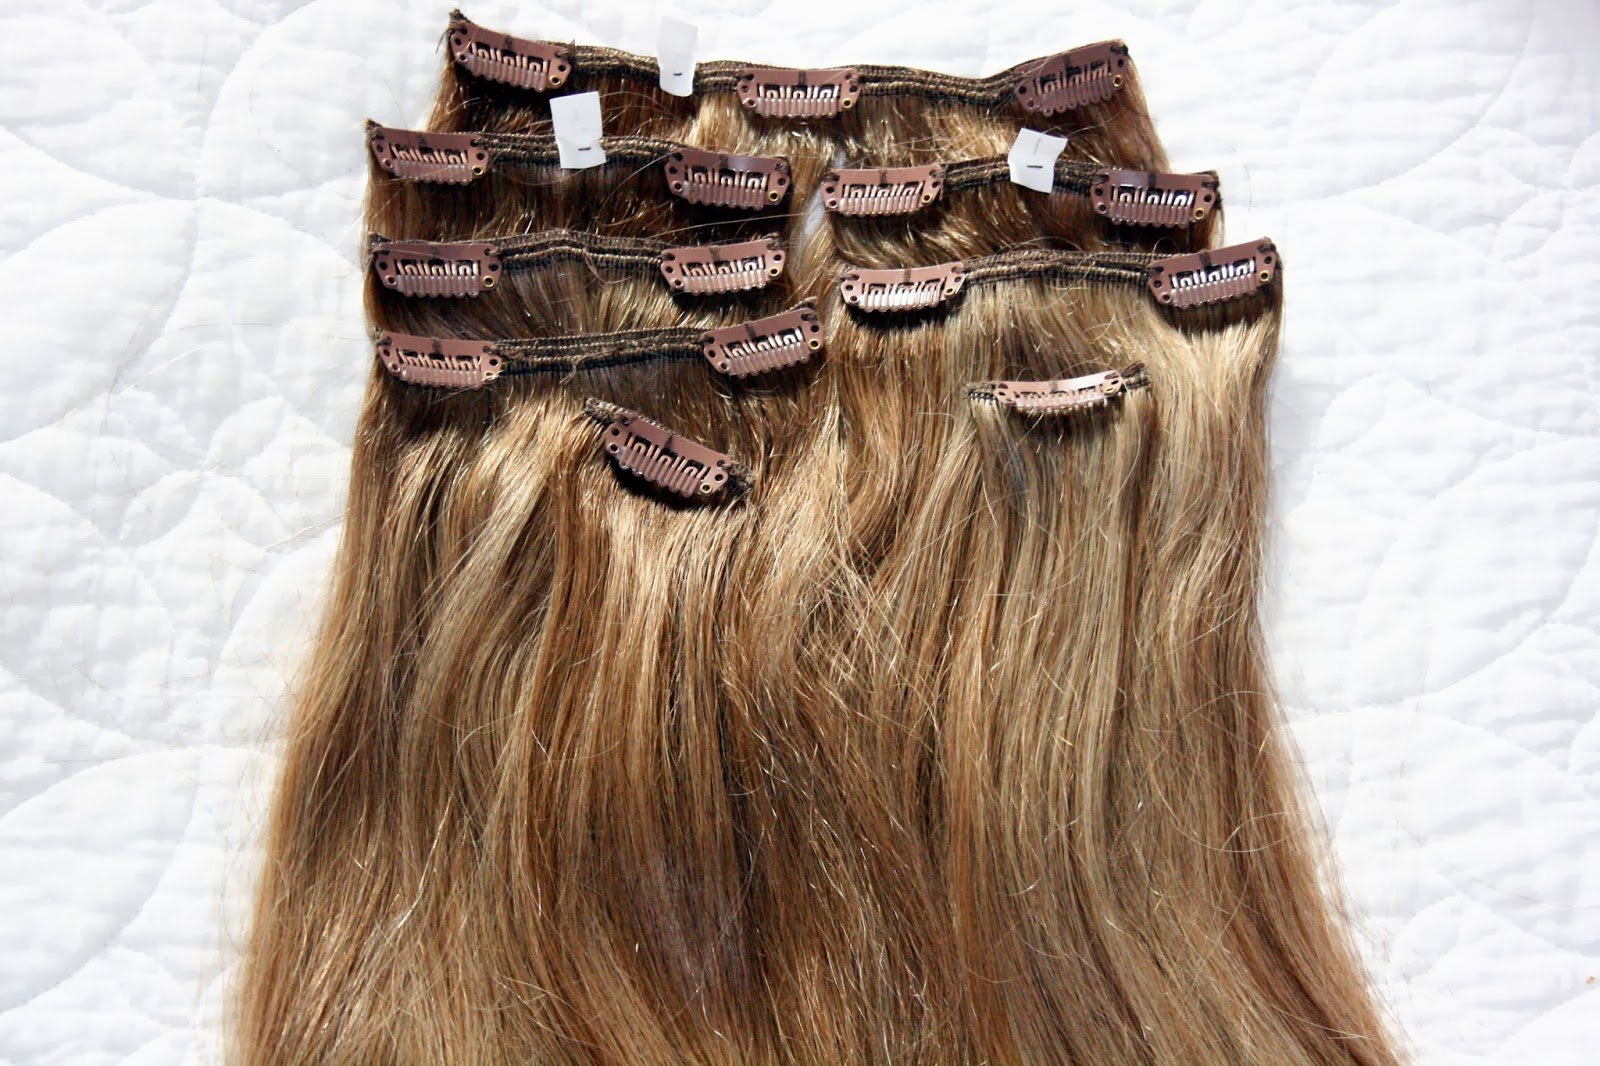 Pretty little obsessions uk beauty blog dirty looks hk hair a few weeks ago i was contacted by dirty looks and asked if id like to review a set of their hk hair extensions i always wear a hair piece or extensions pmusecretfo Gallery